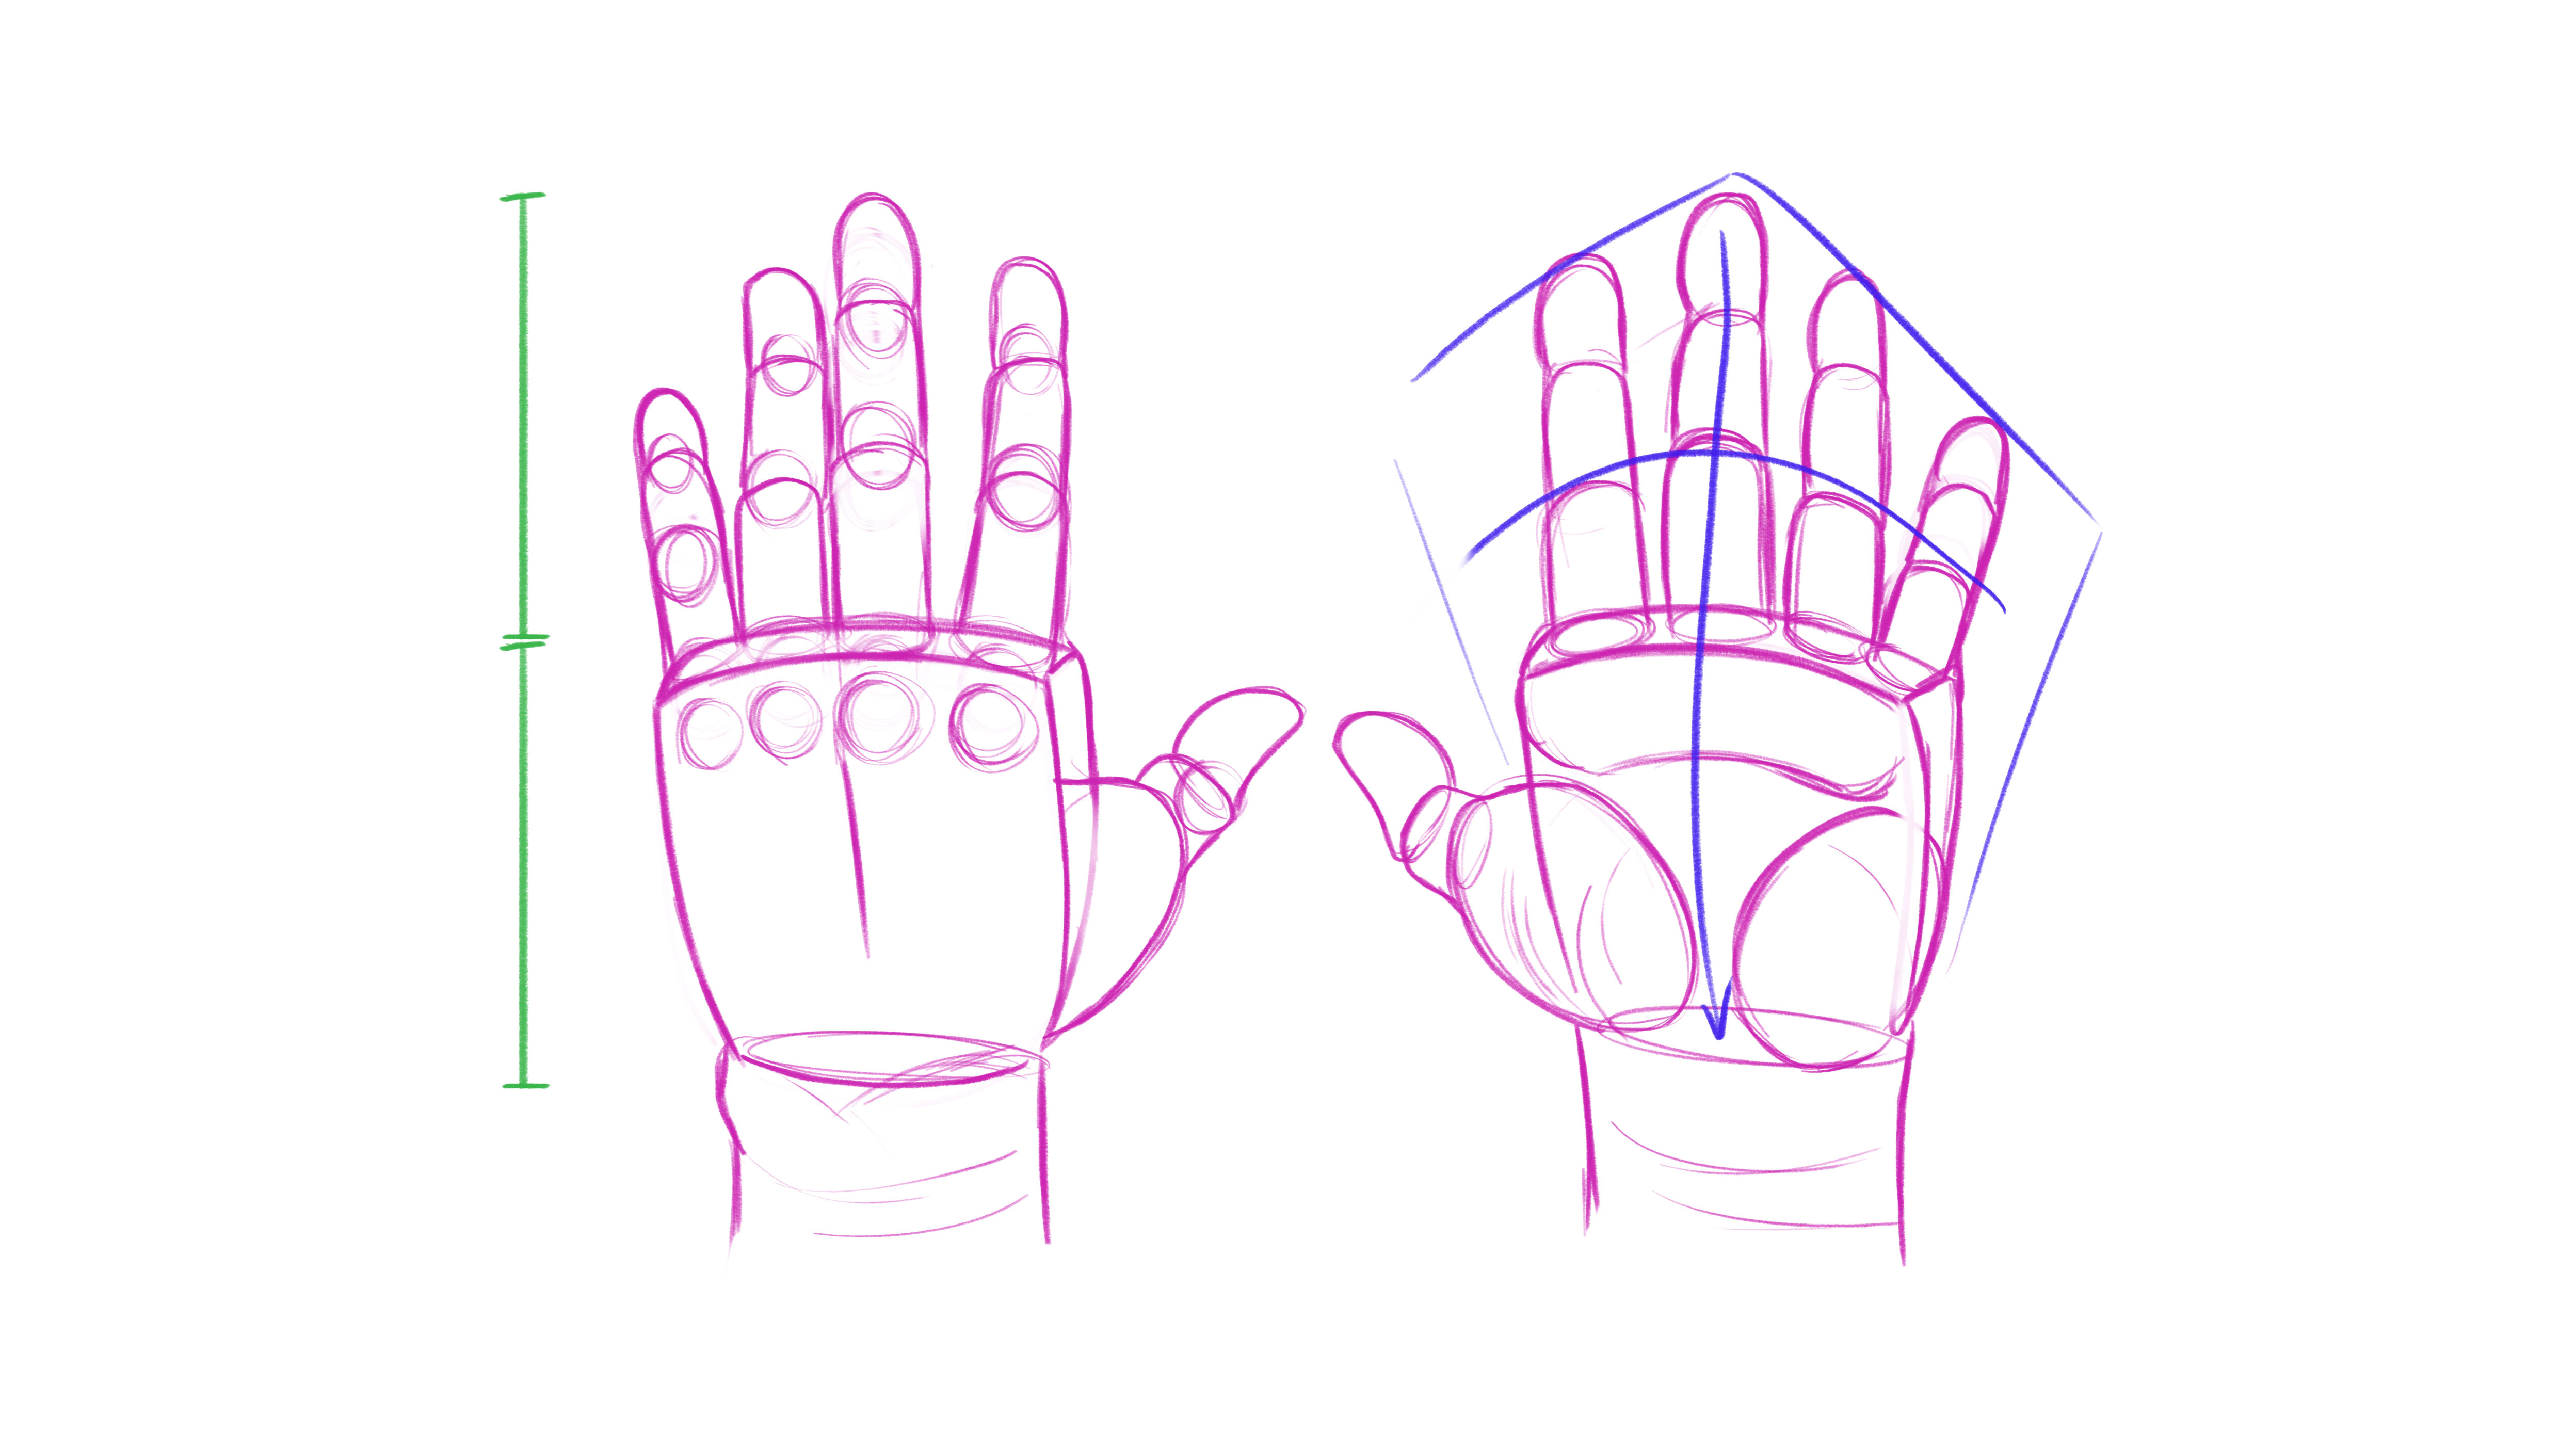 How to draw hands: build it in 3D and then observe